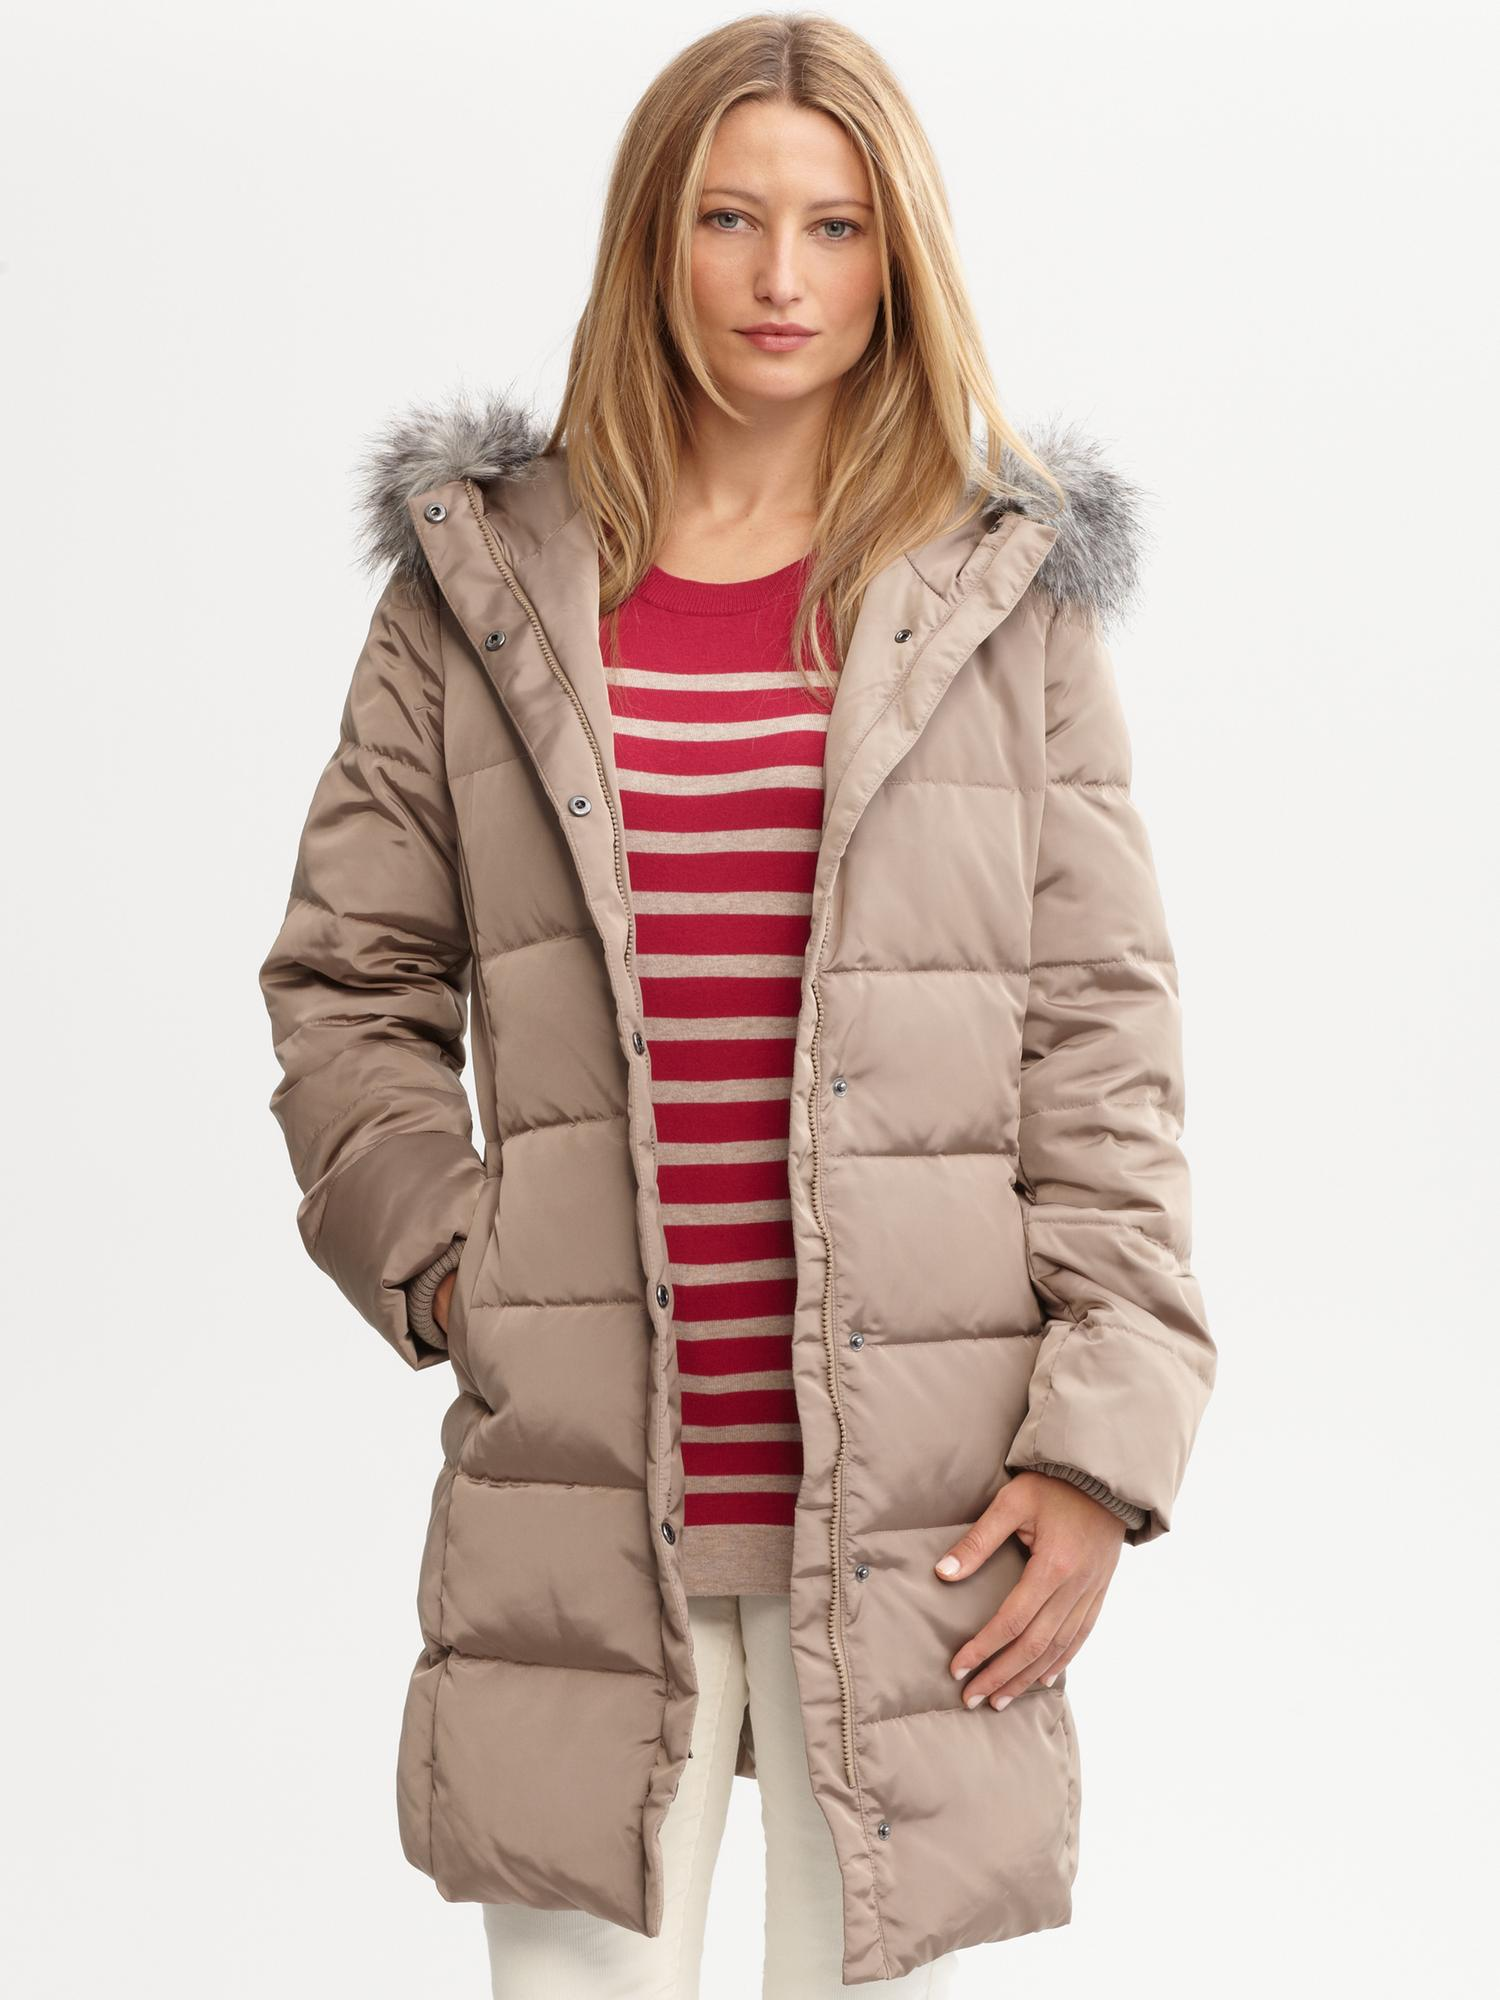 Mackage Jacket Womens